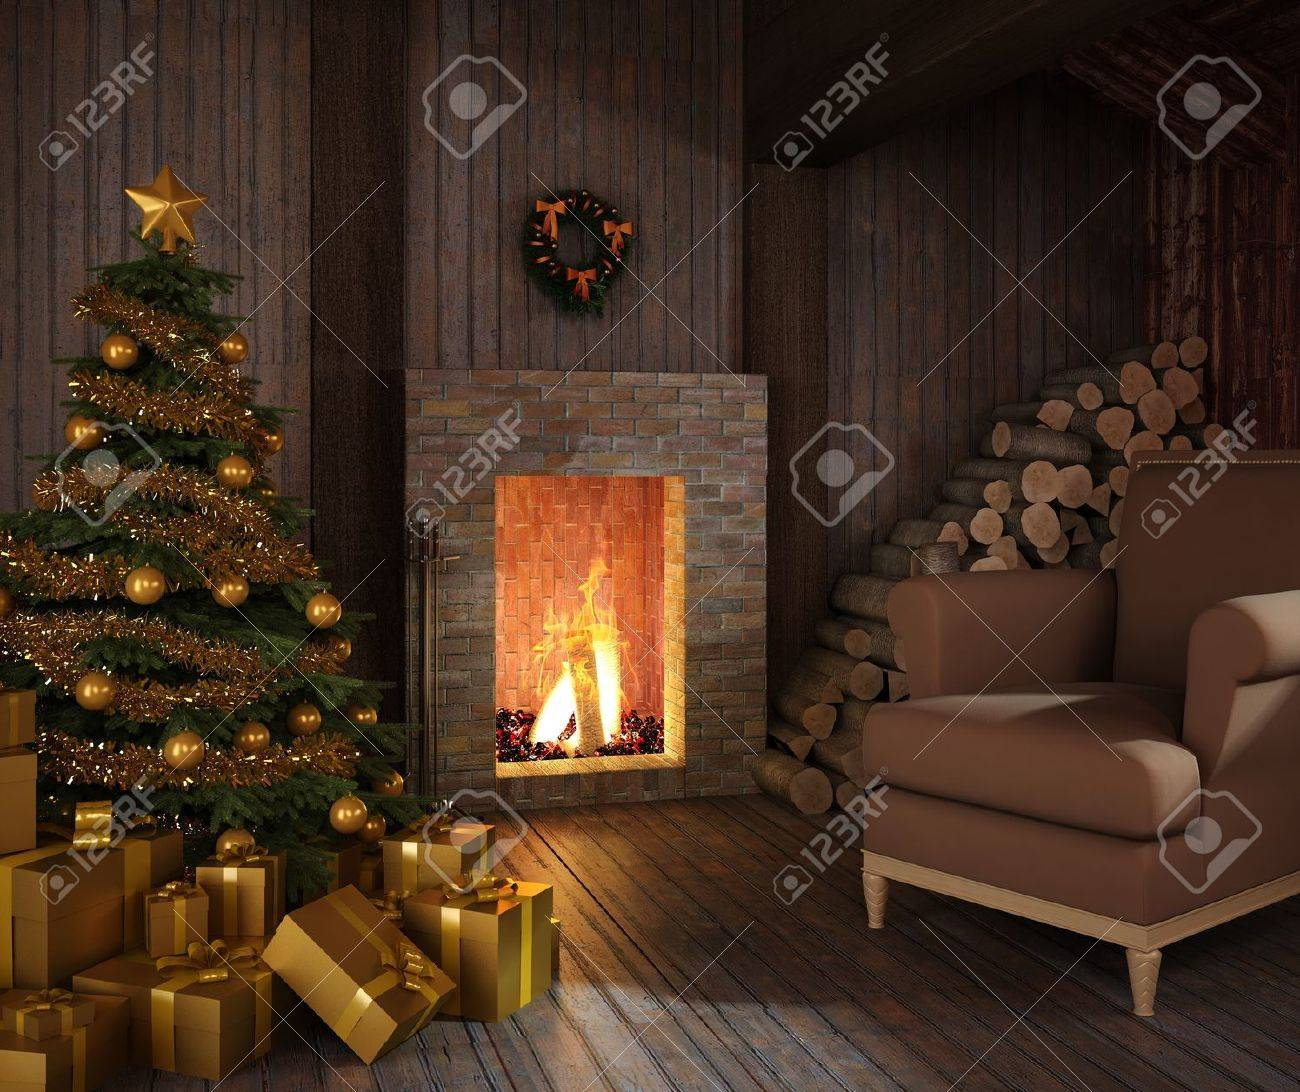 rustic christmas fireplace at night with tree presents and couch